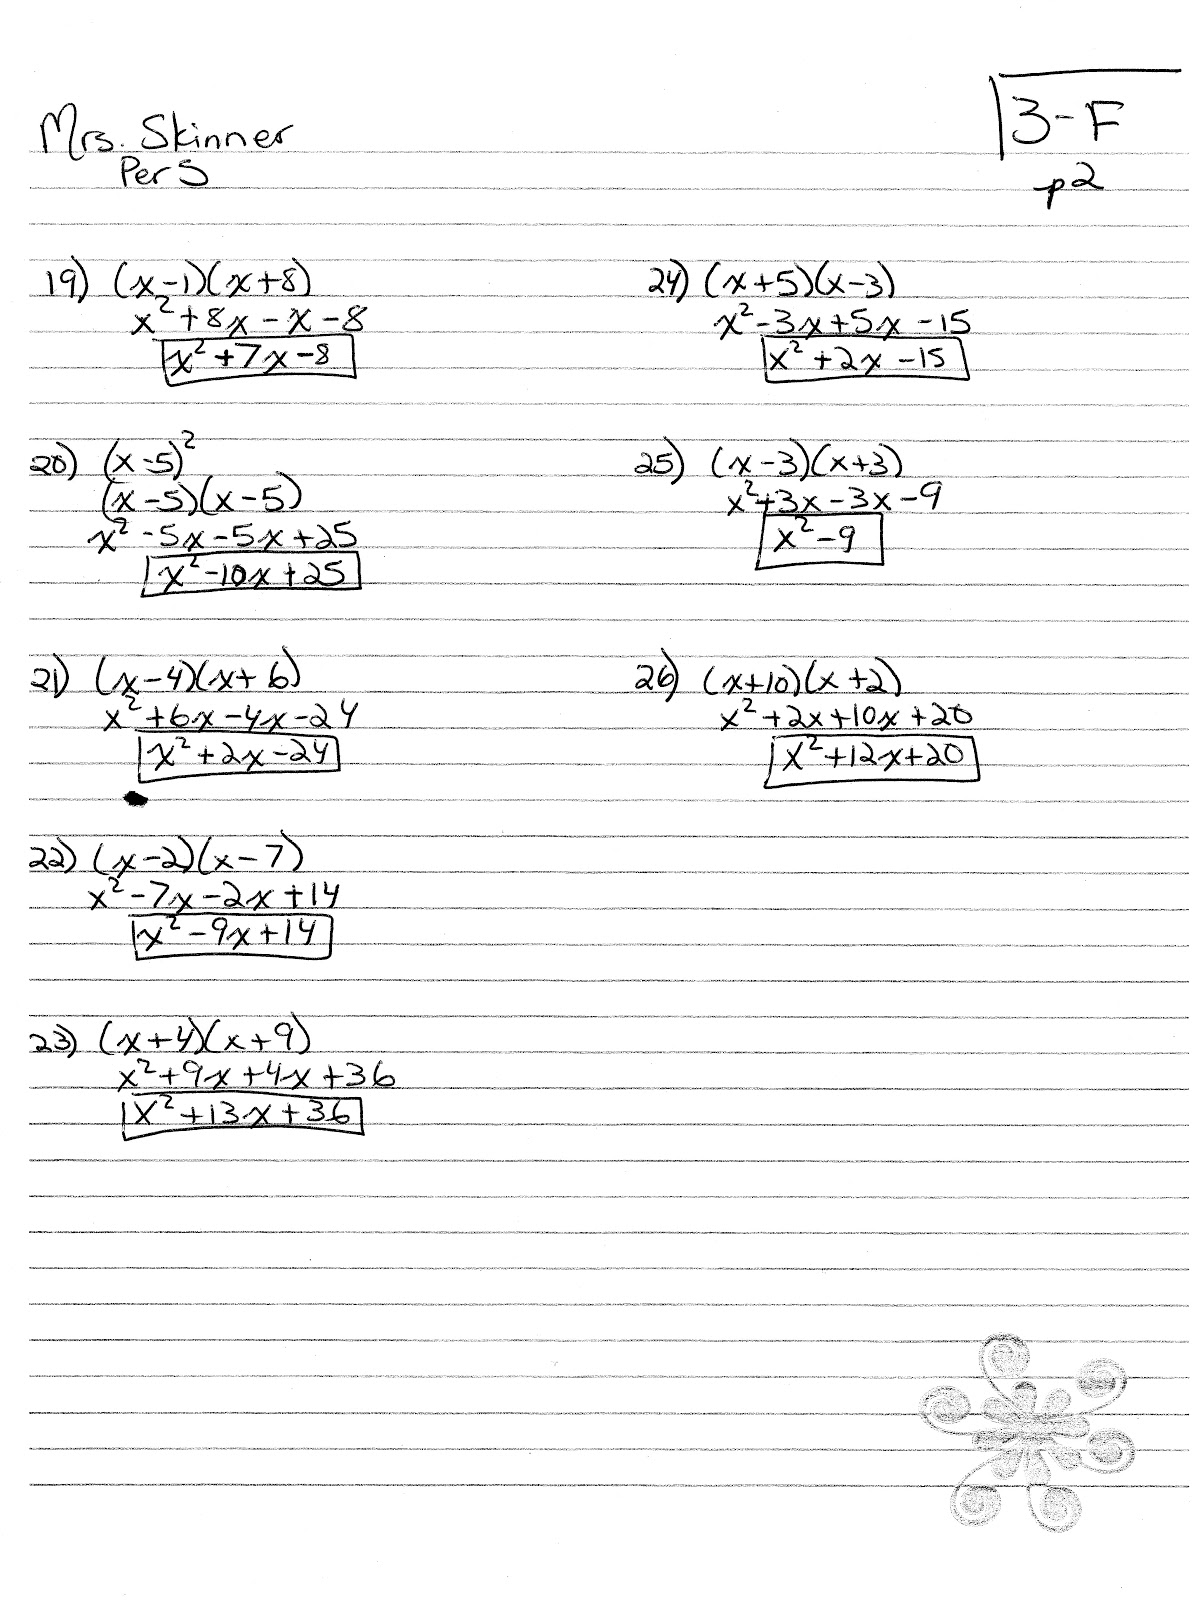 Iroquois Algebra Blog Multiplying Binomials Hw Answer Key